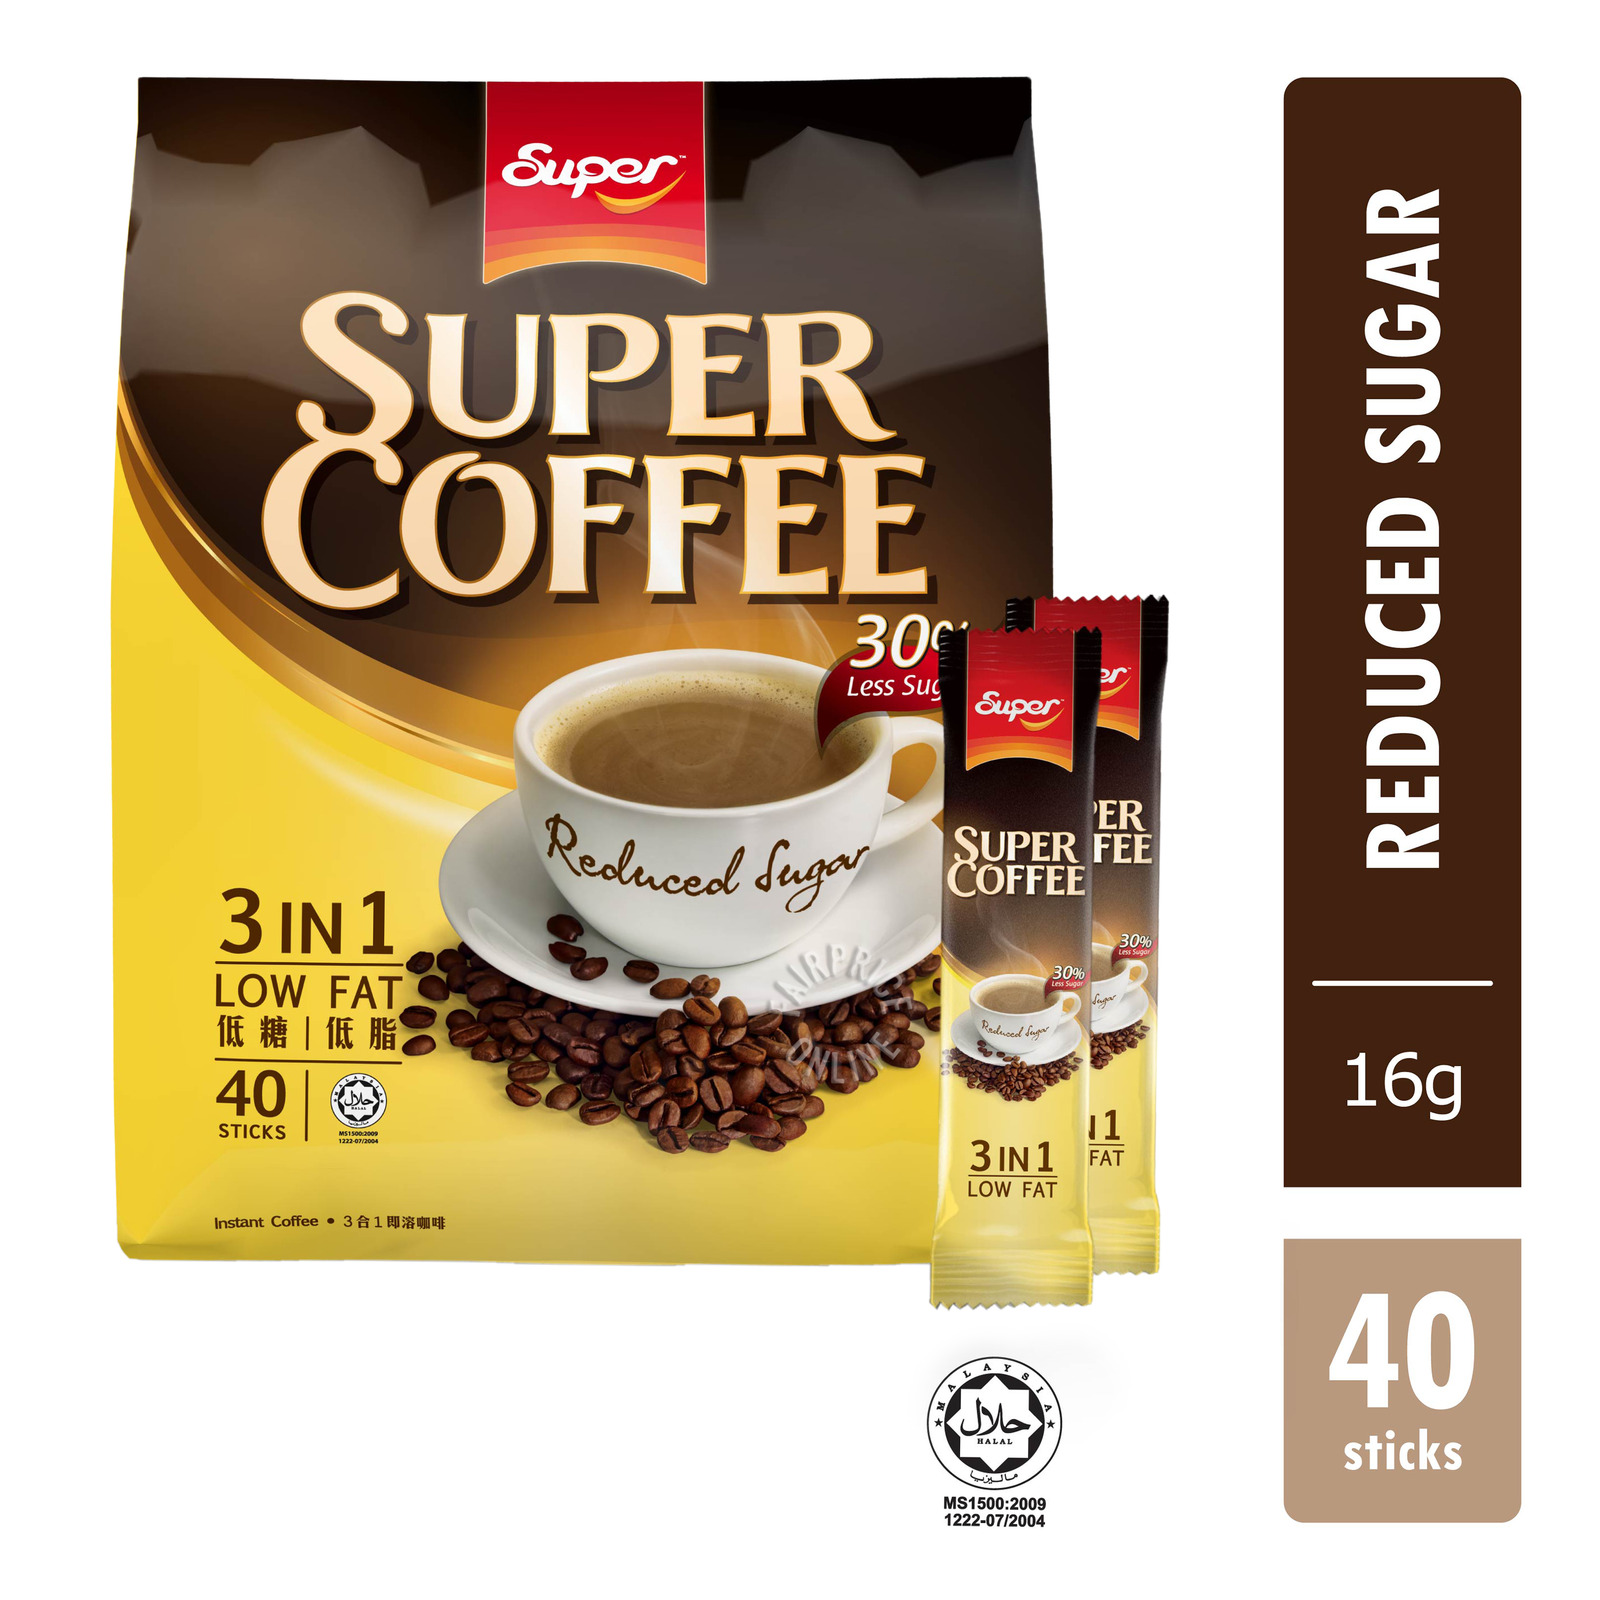 Super 3 in 1 Instant Coffee - Low Fat (30% Less Sugar)